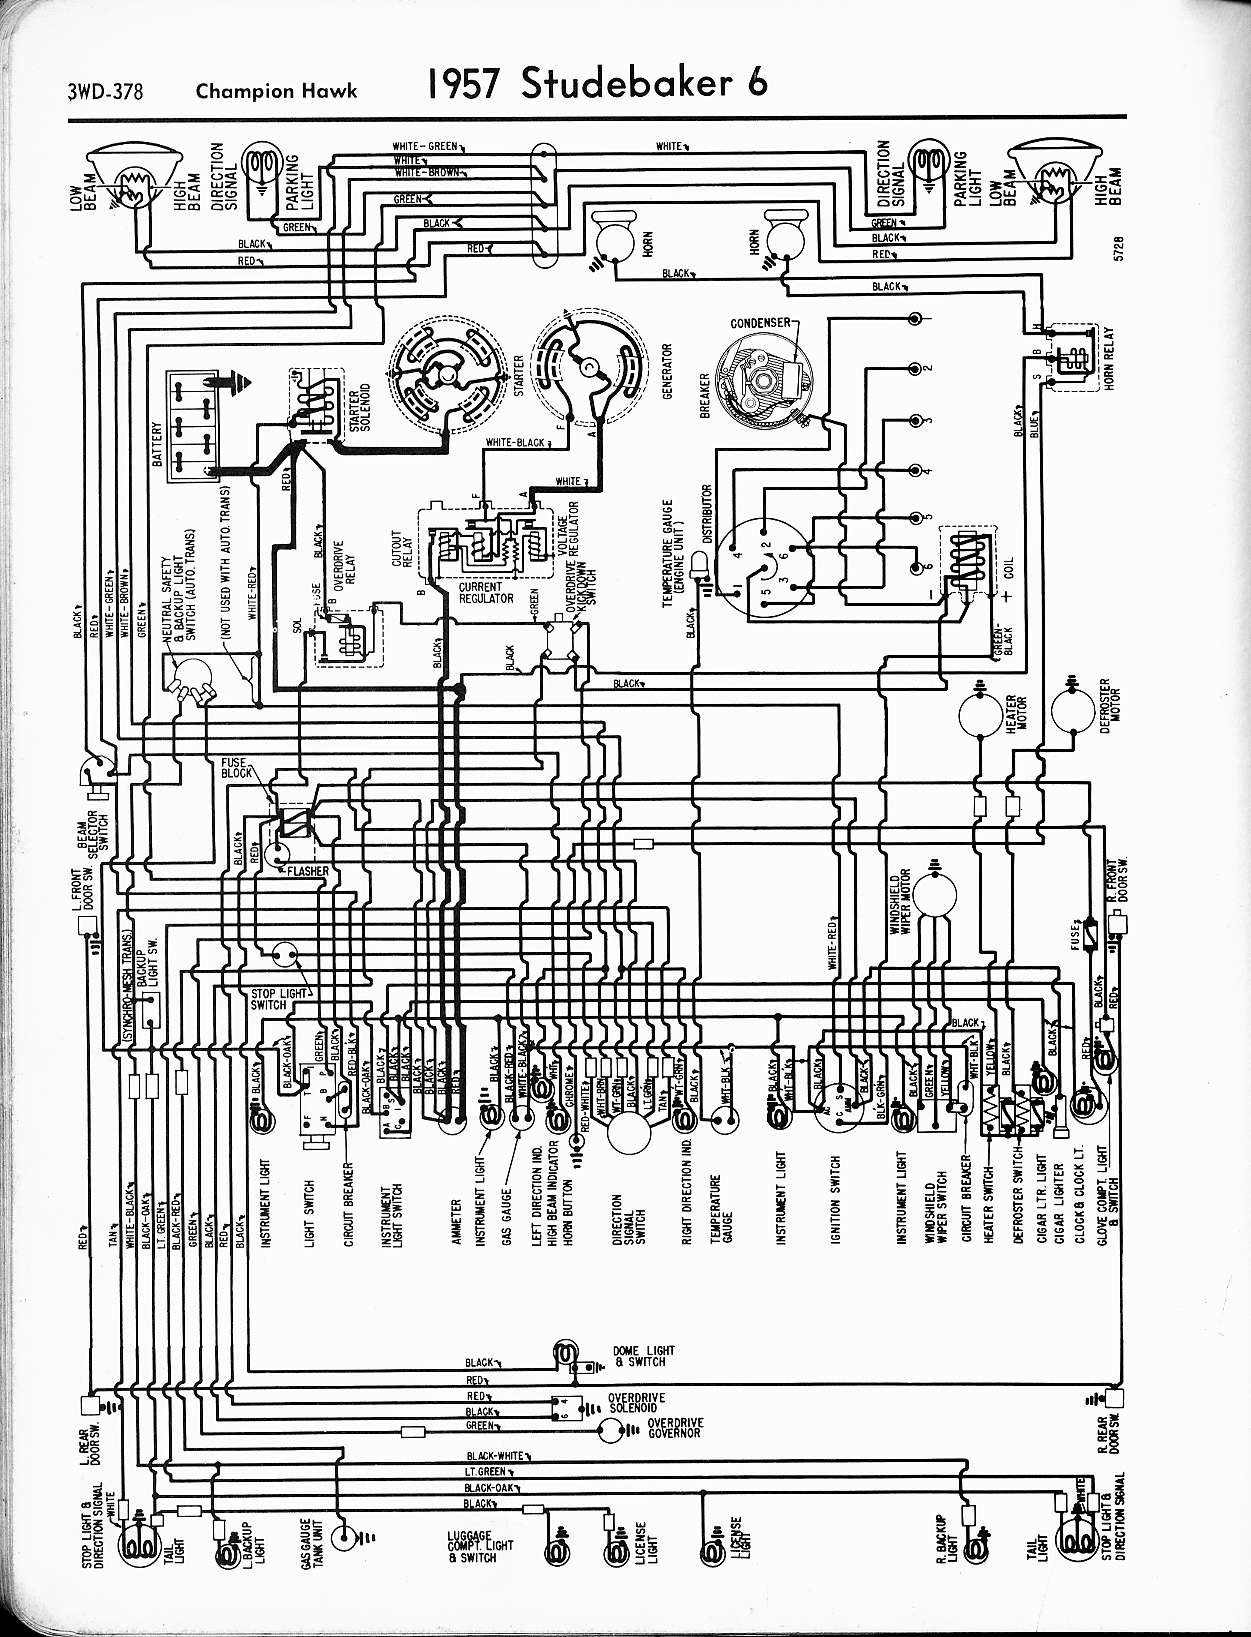 1950 Studebaker Champion Wiring Diagrams - Wiring Diagram on studebaker parts, studebaker wheels, m29 weasel wire diagrams, studebaker engines, studebaker frame, studebaker wiring harness,